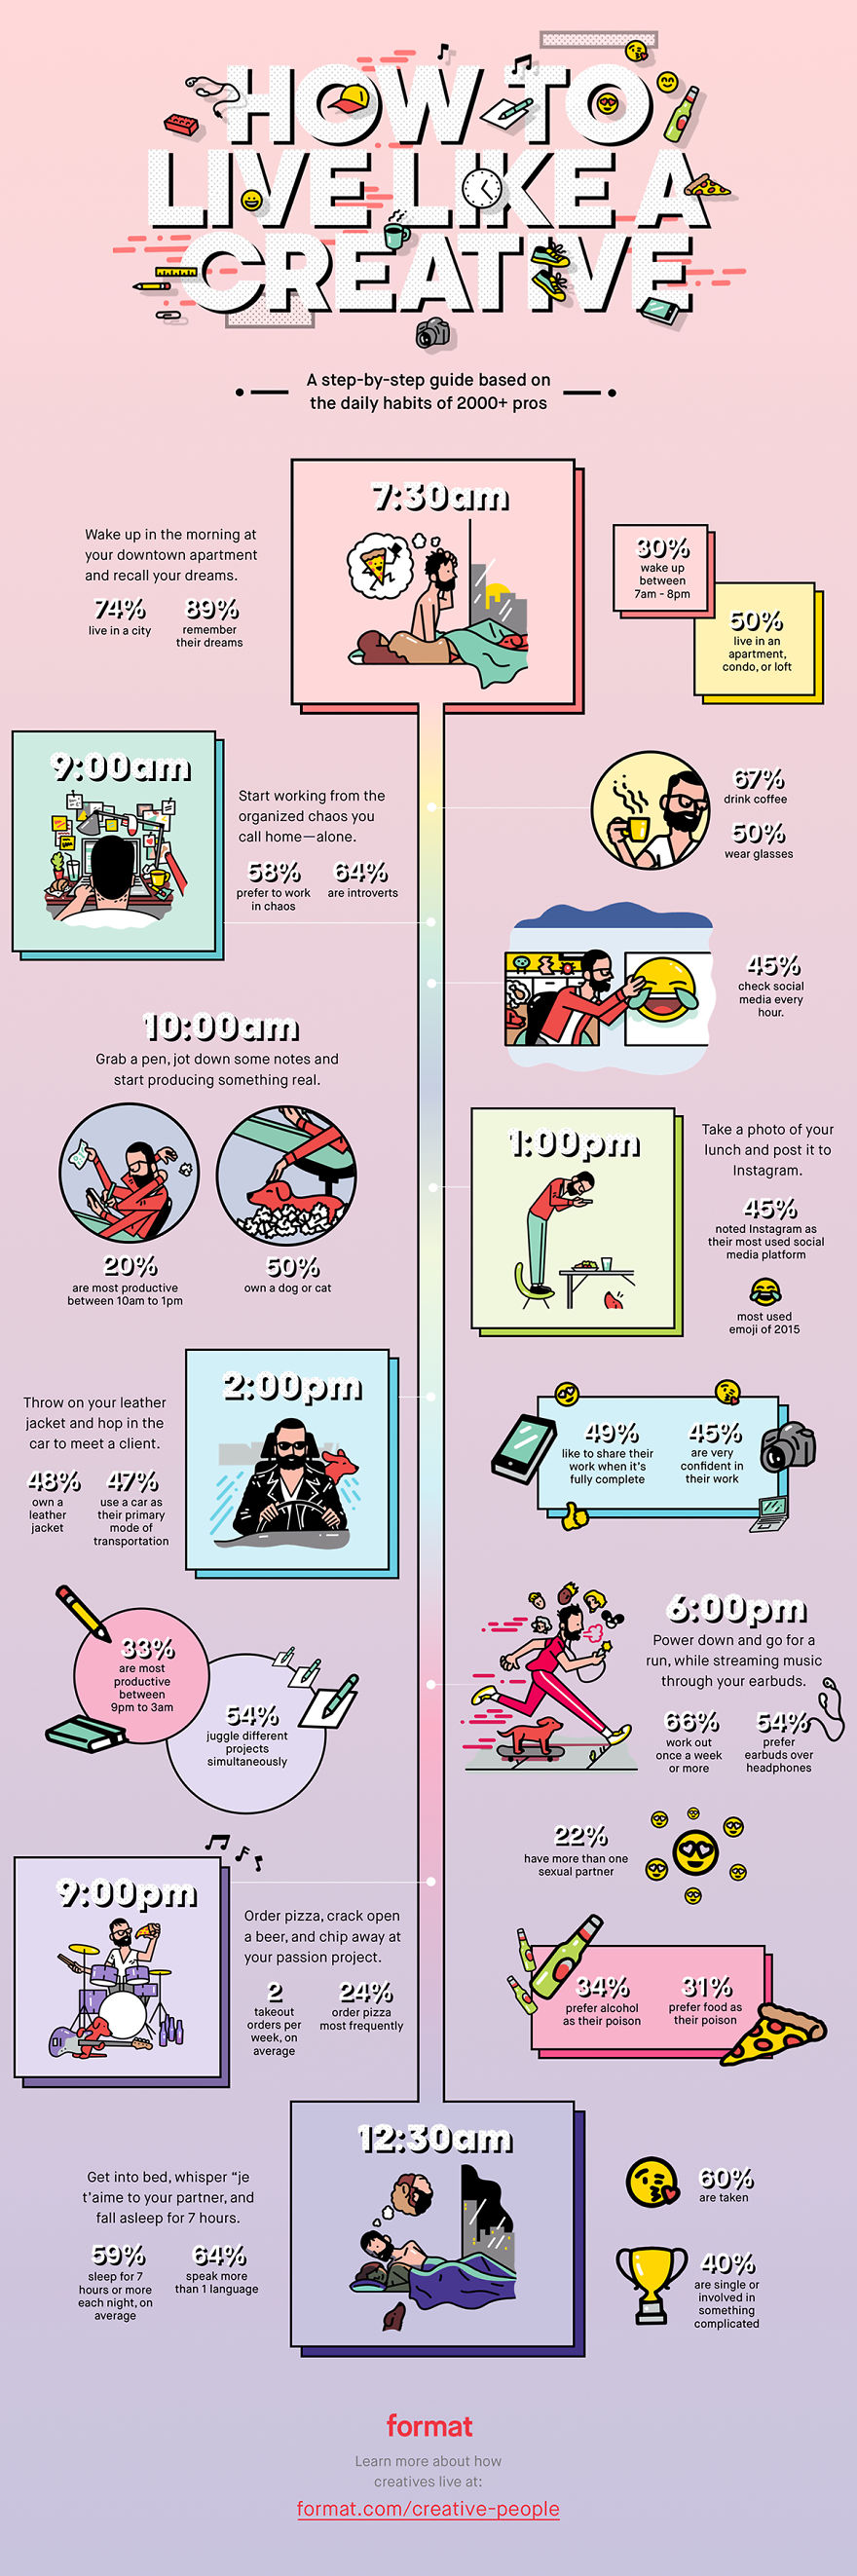 infographic-how-creatives-spend-average-day